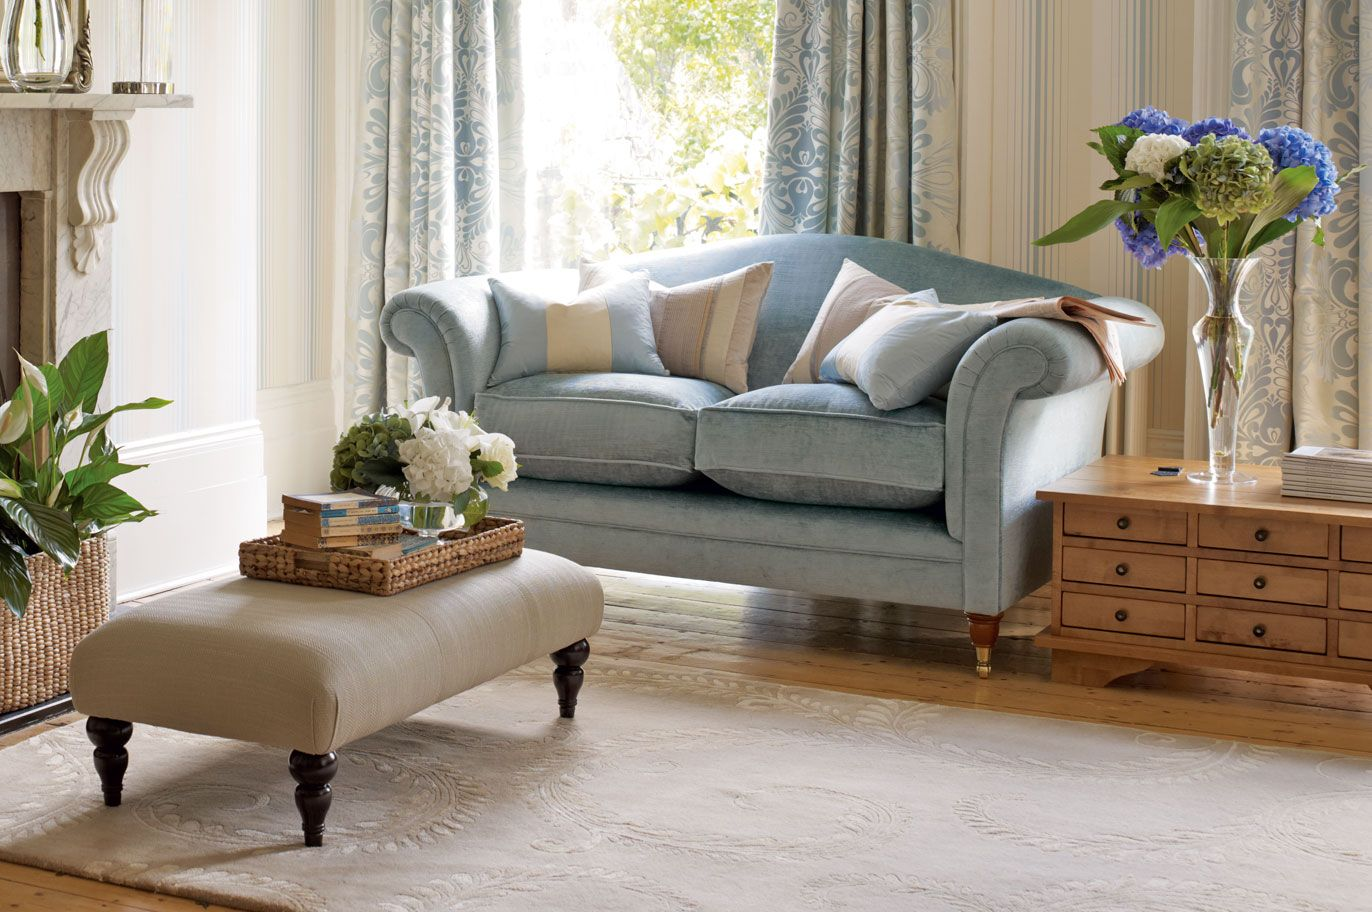 Terrific Gloucester Upholstered 2 Seater Sofa Laura Ashley Made To Evergreenethics Interior Chair Design Evergreenethicsorg